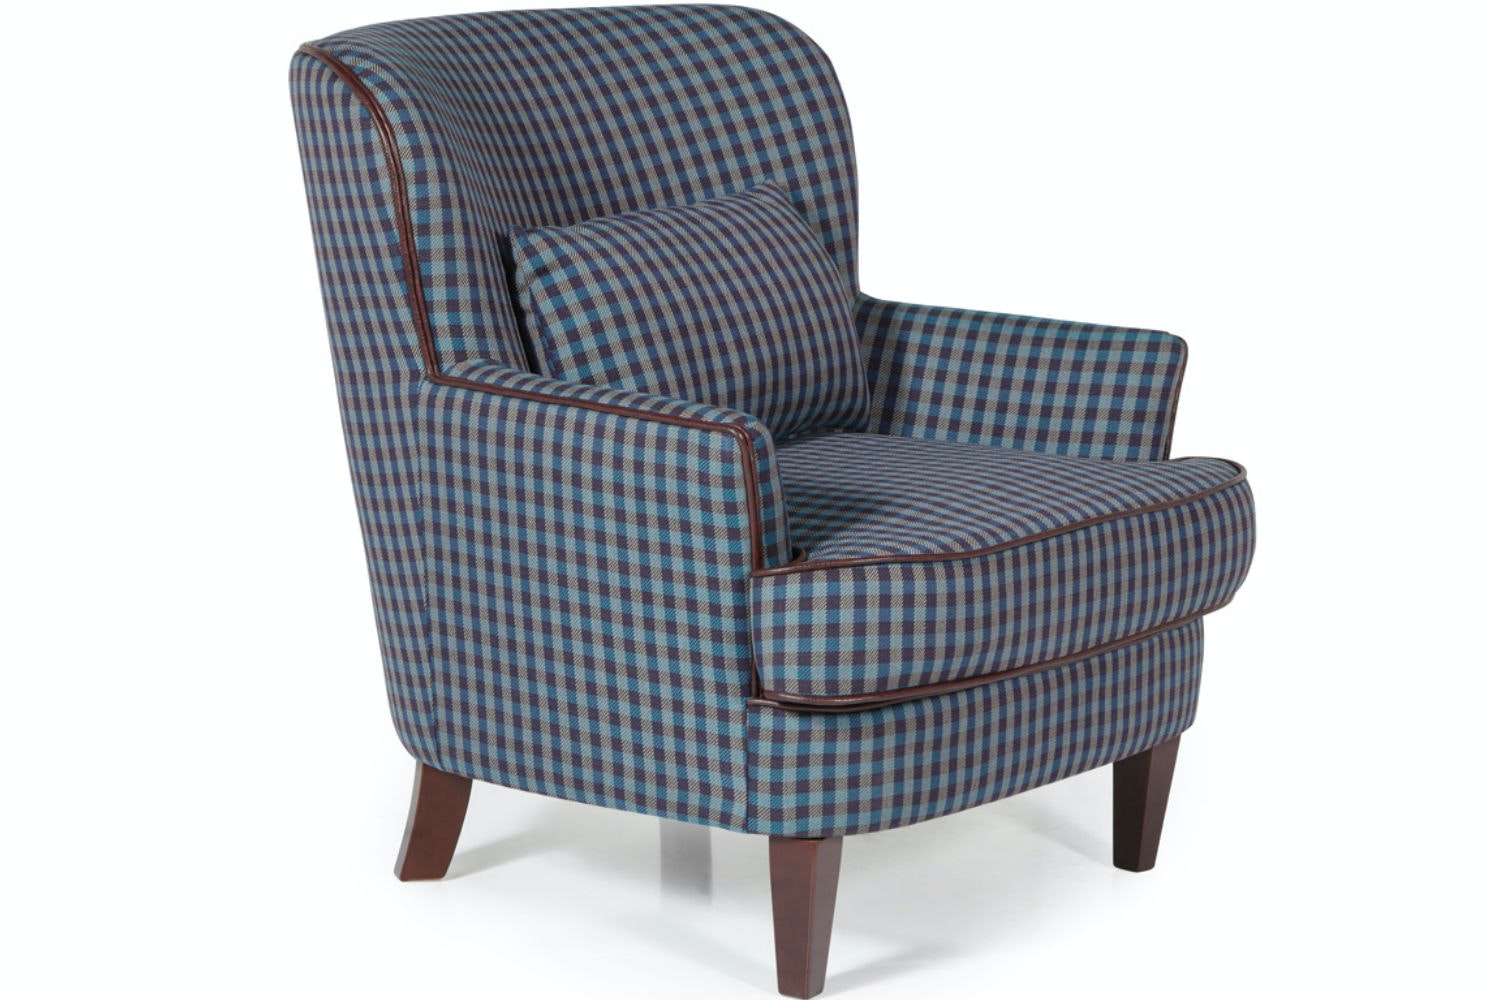 Trafalgar Bedroom Chair Blue